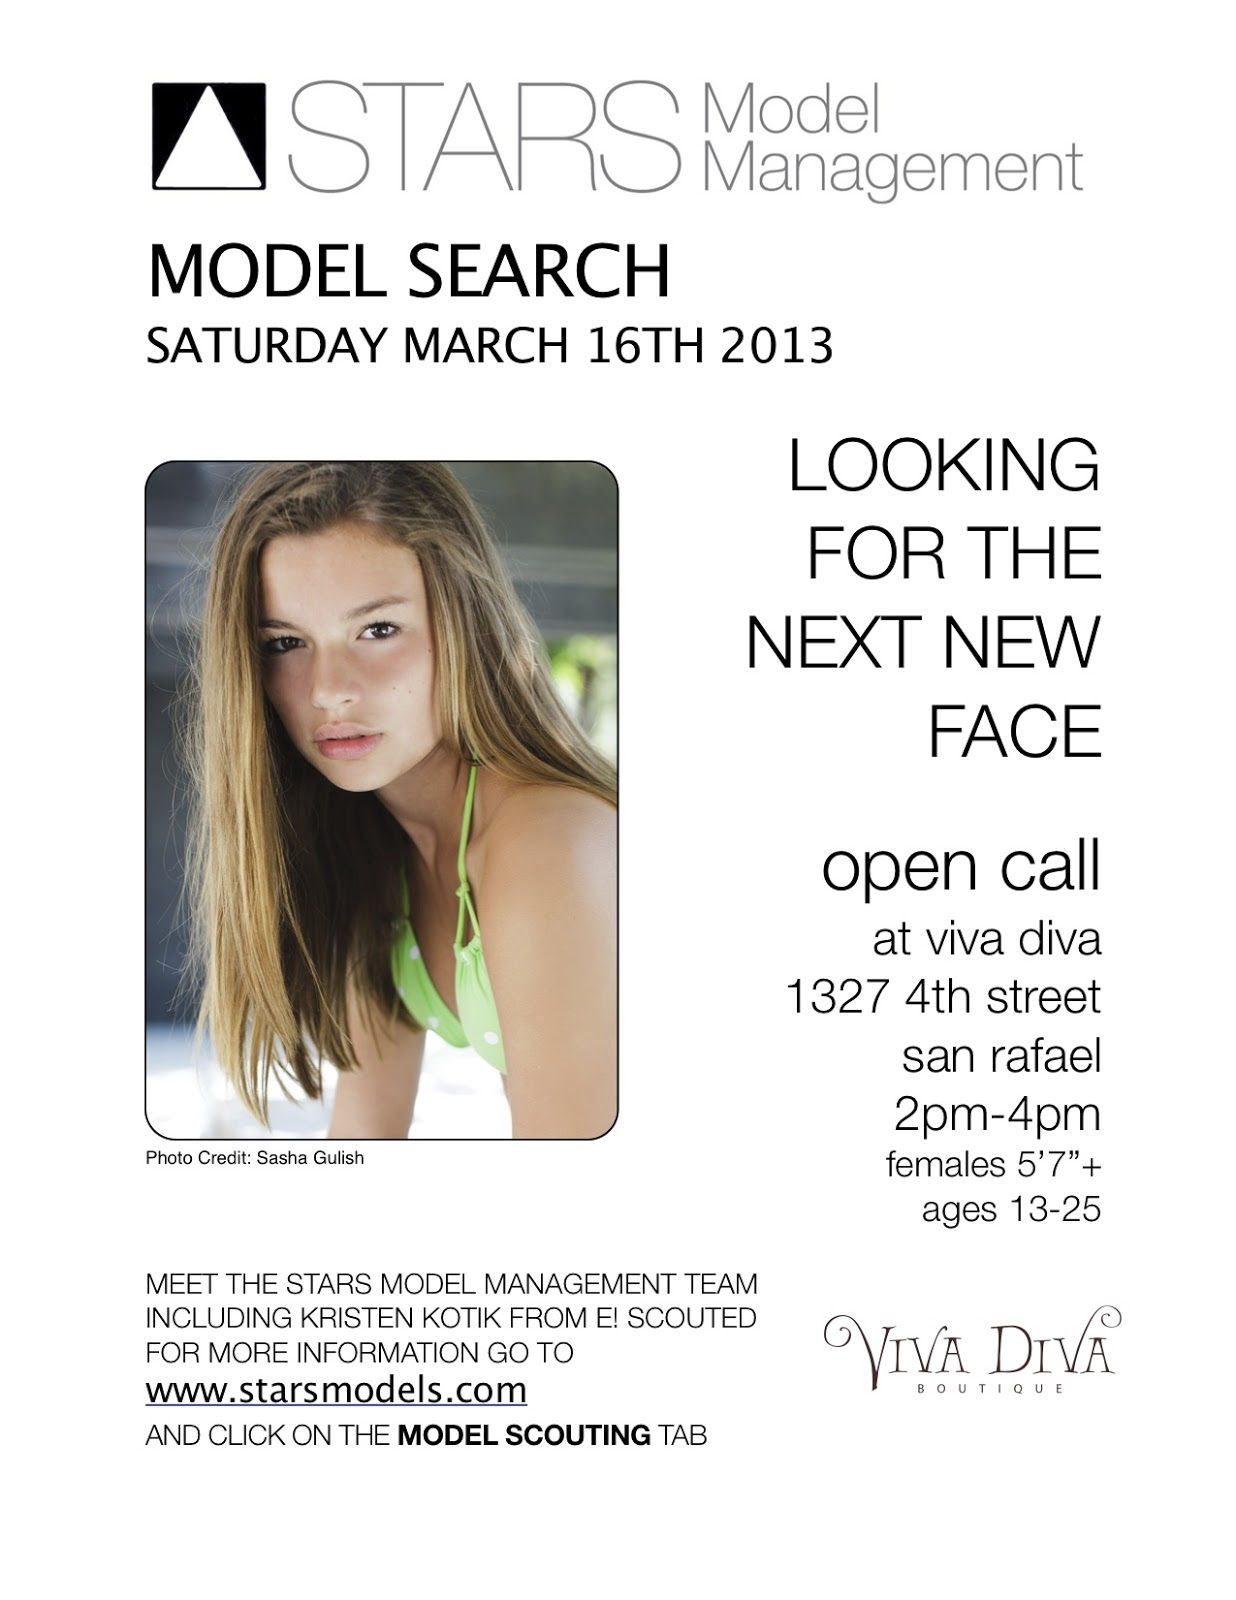 Stars Model Management: MODEL SEARCH: We are looking for our